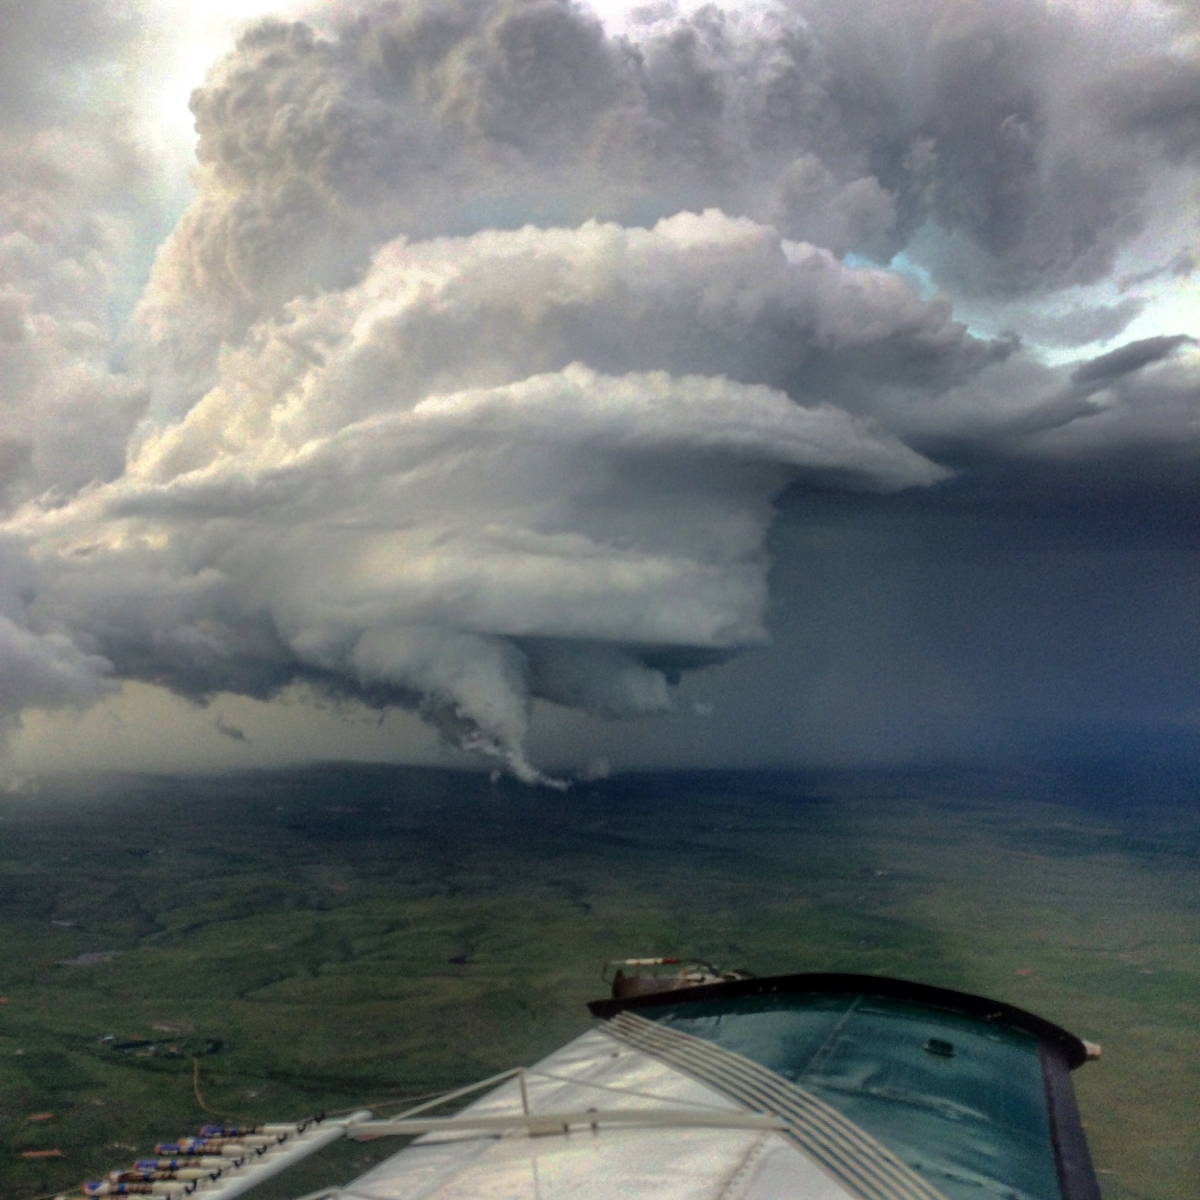 The view from Steffany Royal's Piper Seneca of a gathering singlecell thunderstorm.